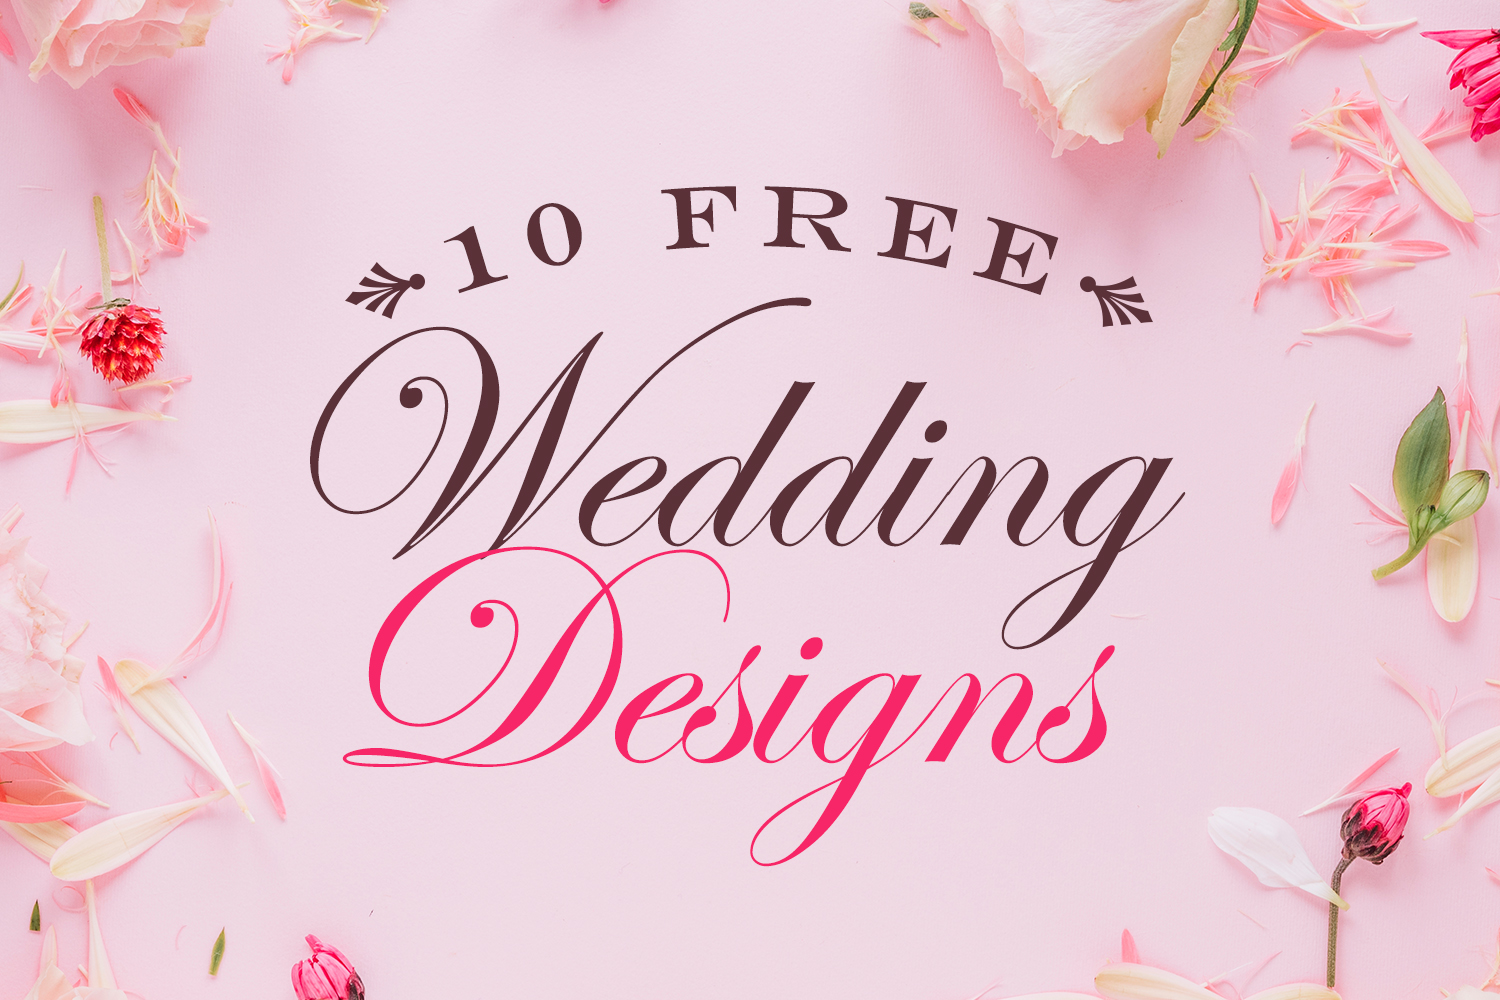 10 FREE Wedding Designs